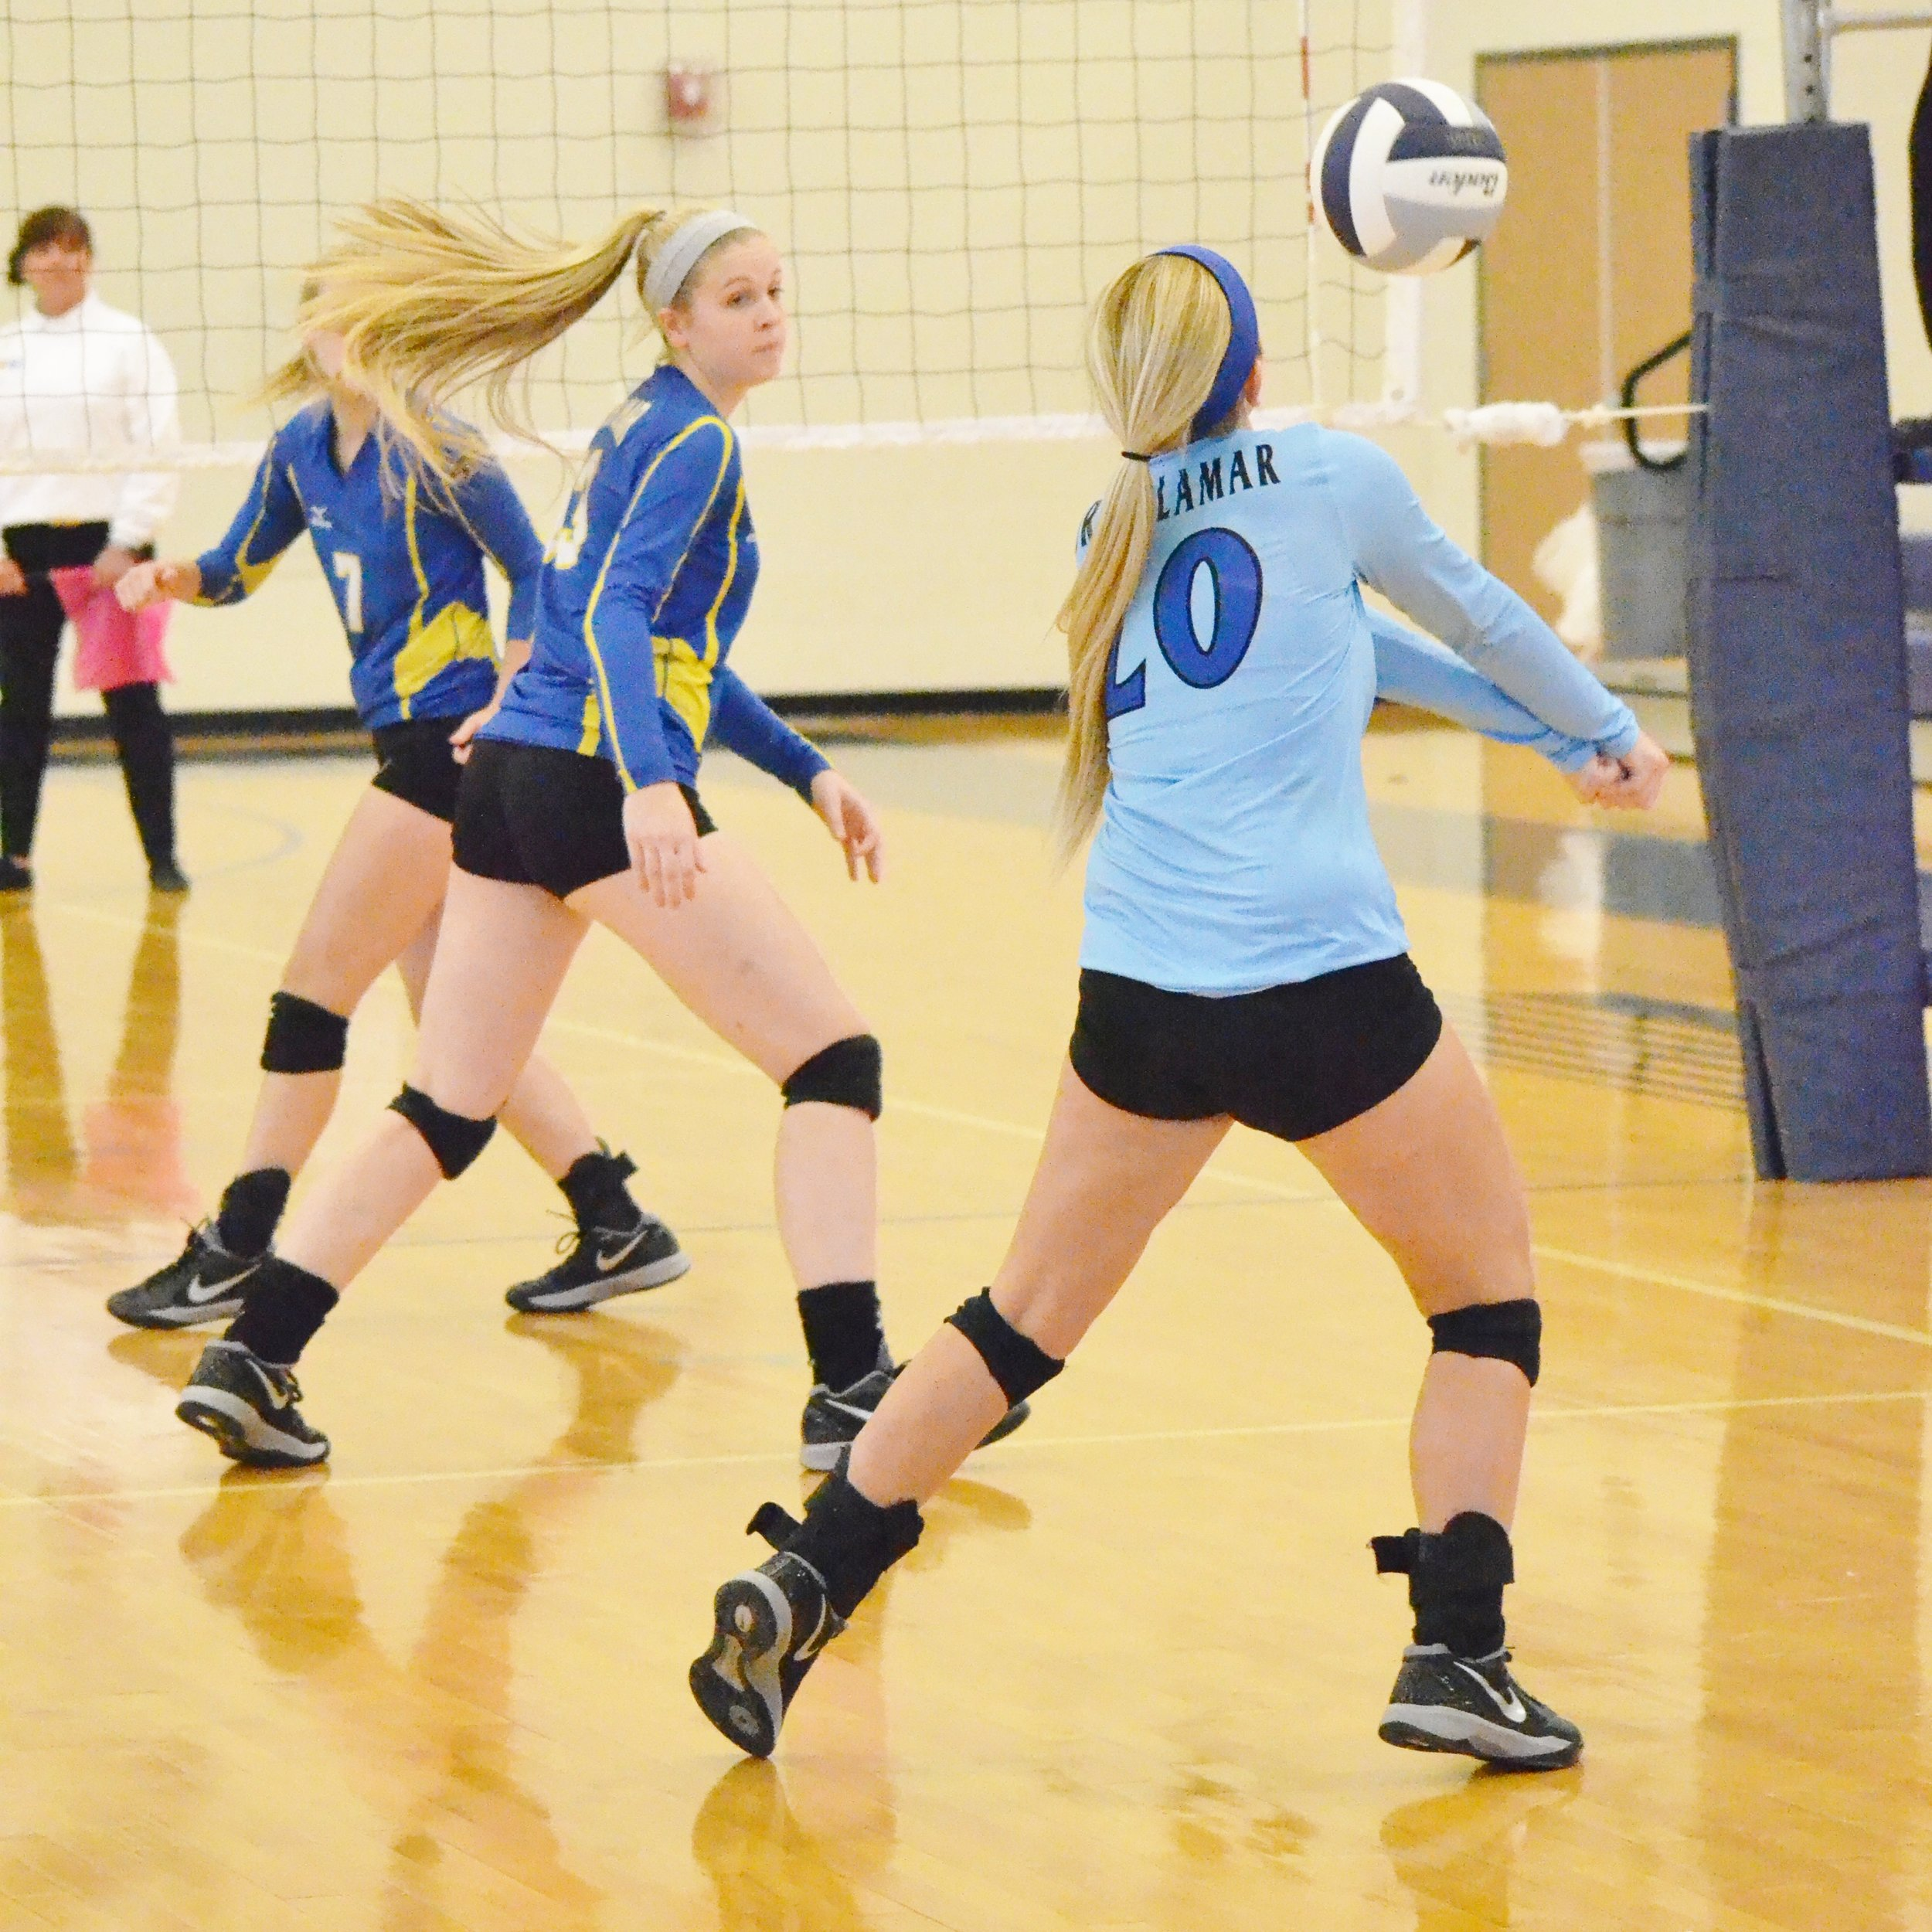 (photo by Beverly White) Natalie Allen (20) hitting the ball as Amber White looks on.